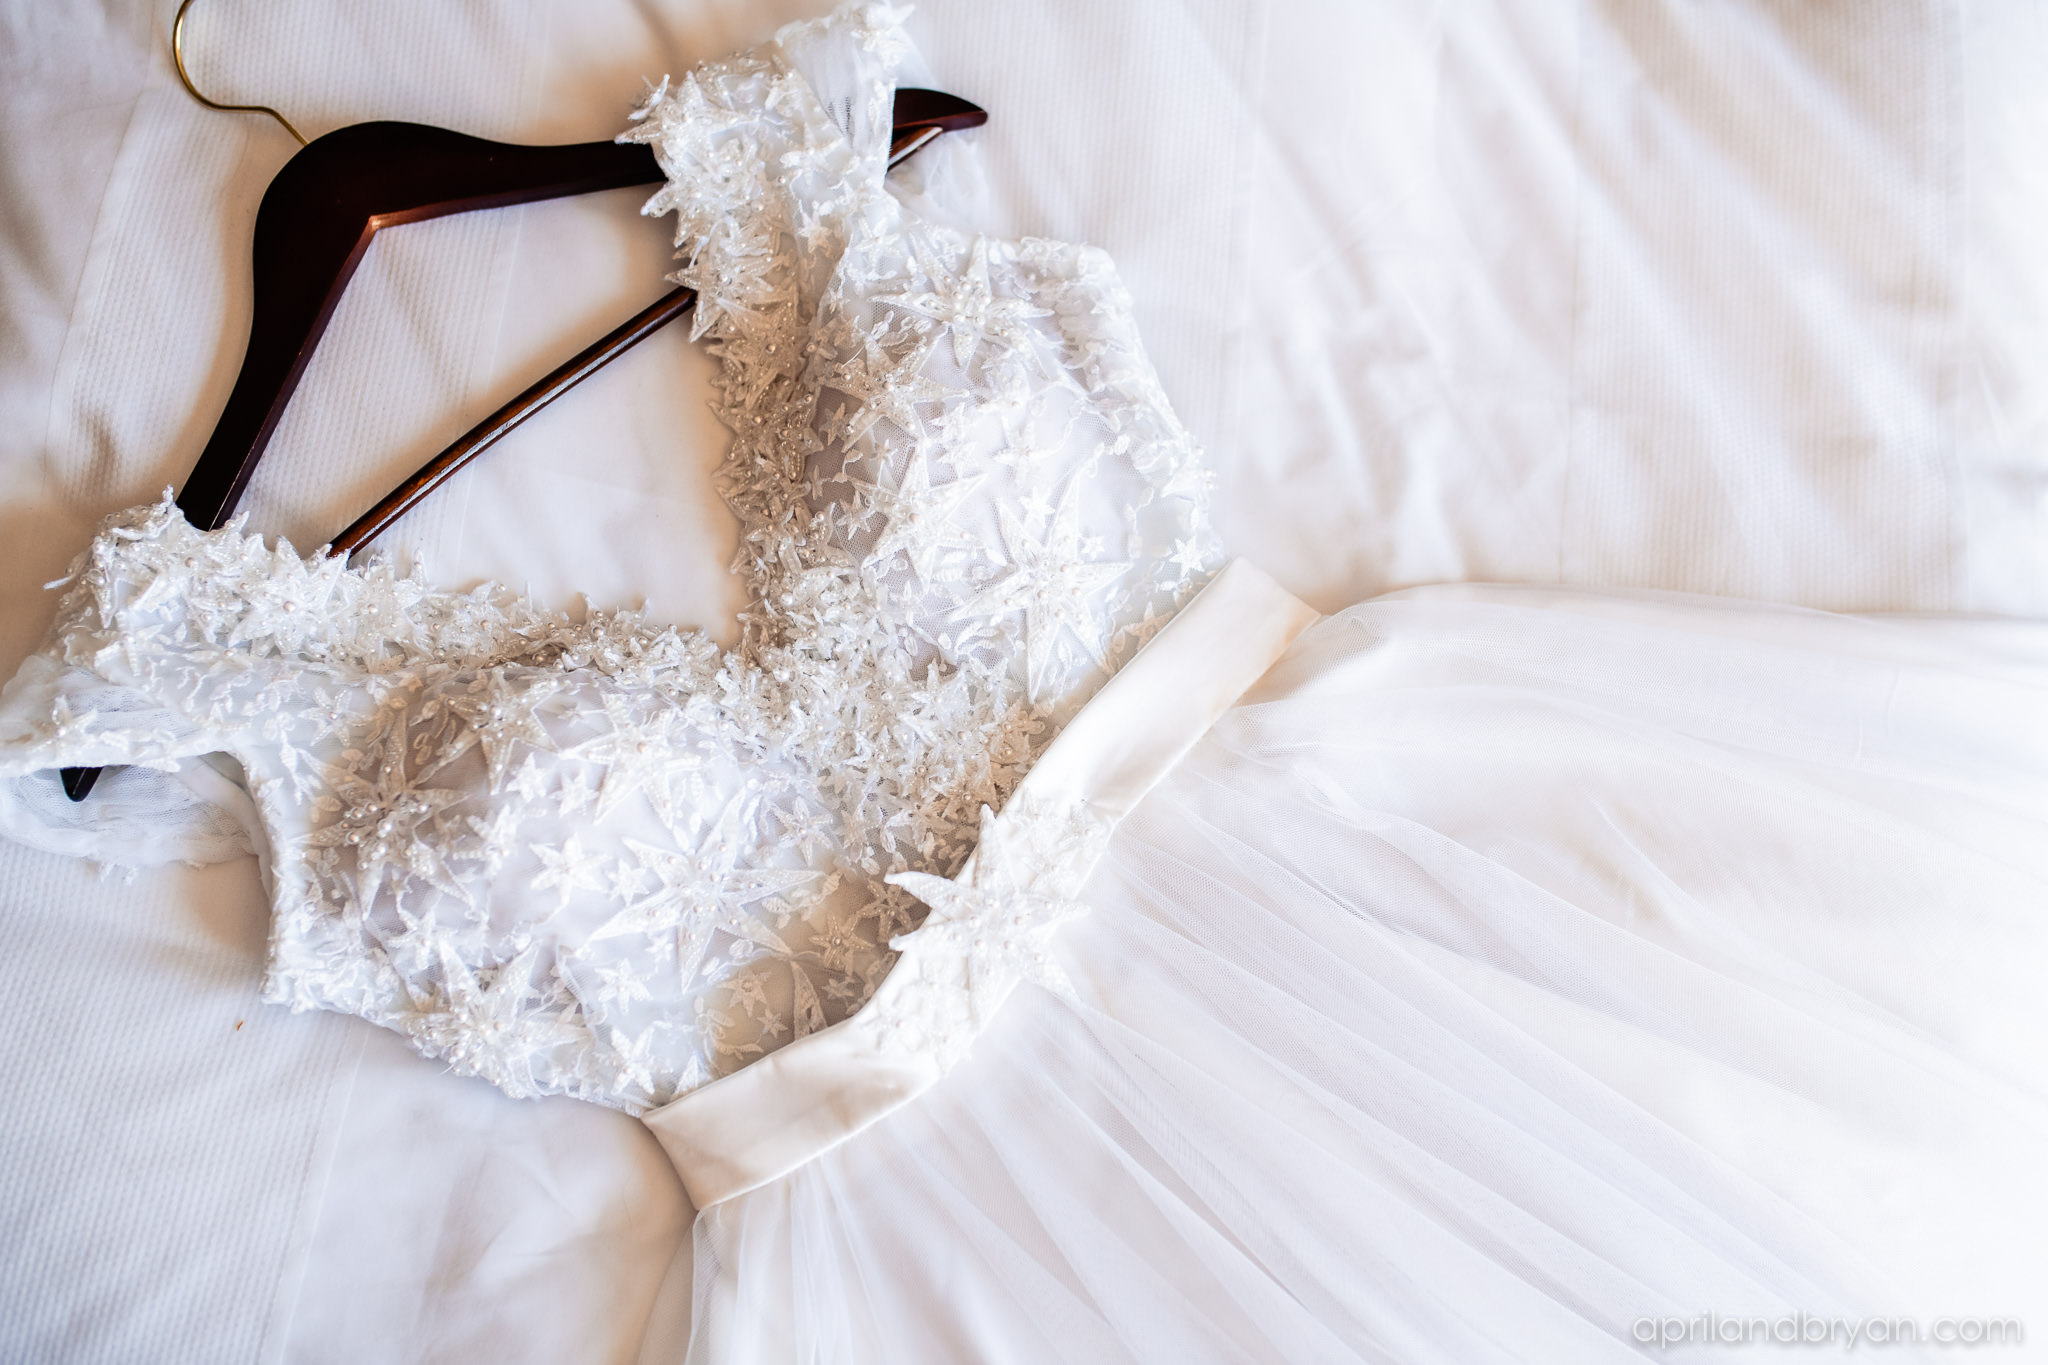 The wedding dress Rebecca is to where down the isle to meet hr soon to be husband. Nicholas and Rebecca Fasnacht tie the not at Tellus360 on November 1, 2019. Captured by April & Bryan Photography and featured on Dream Weddings.